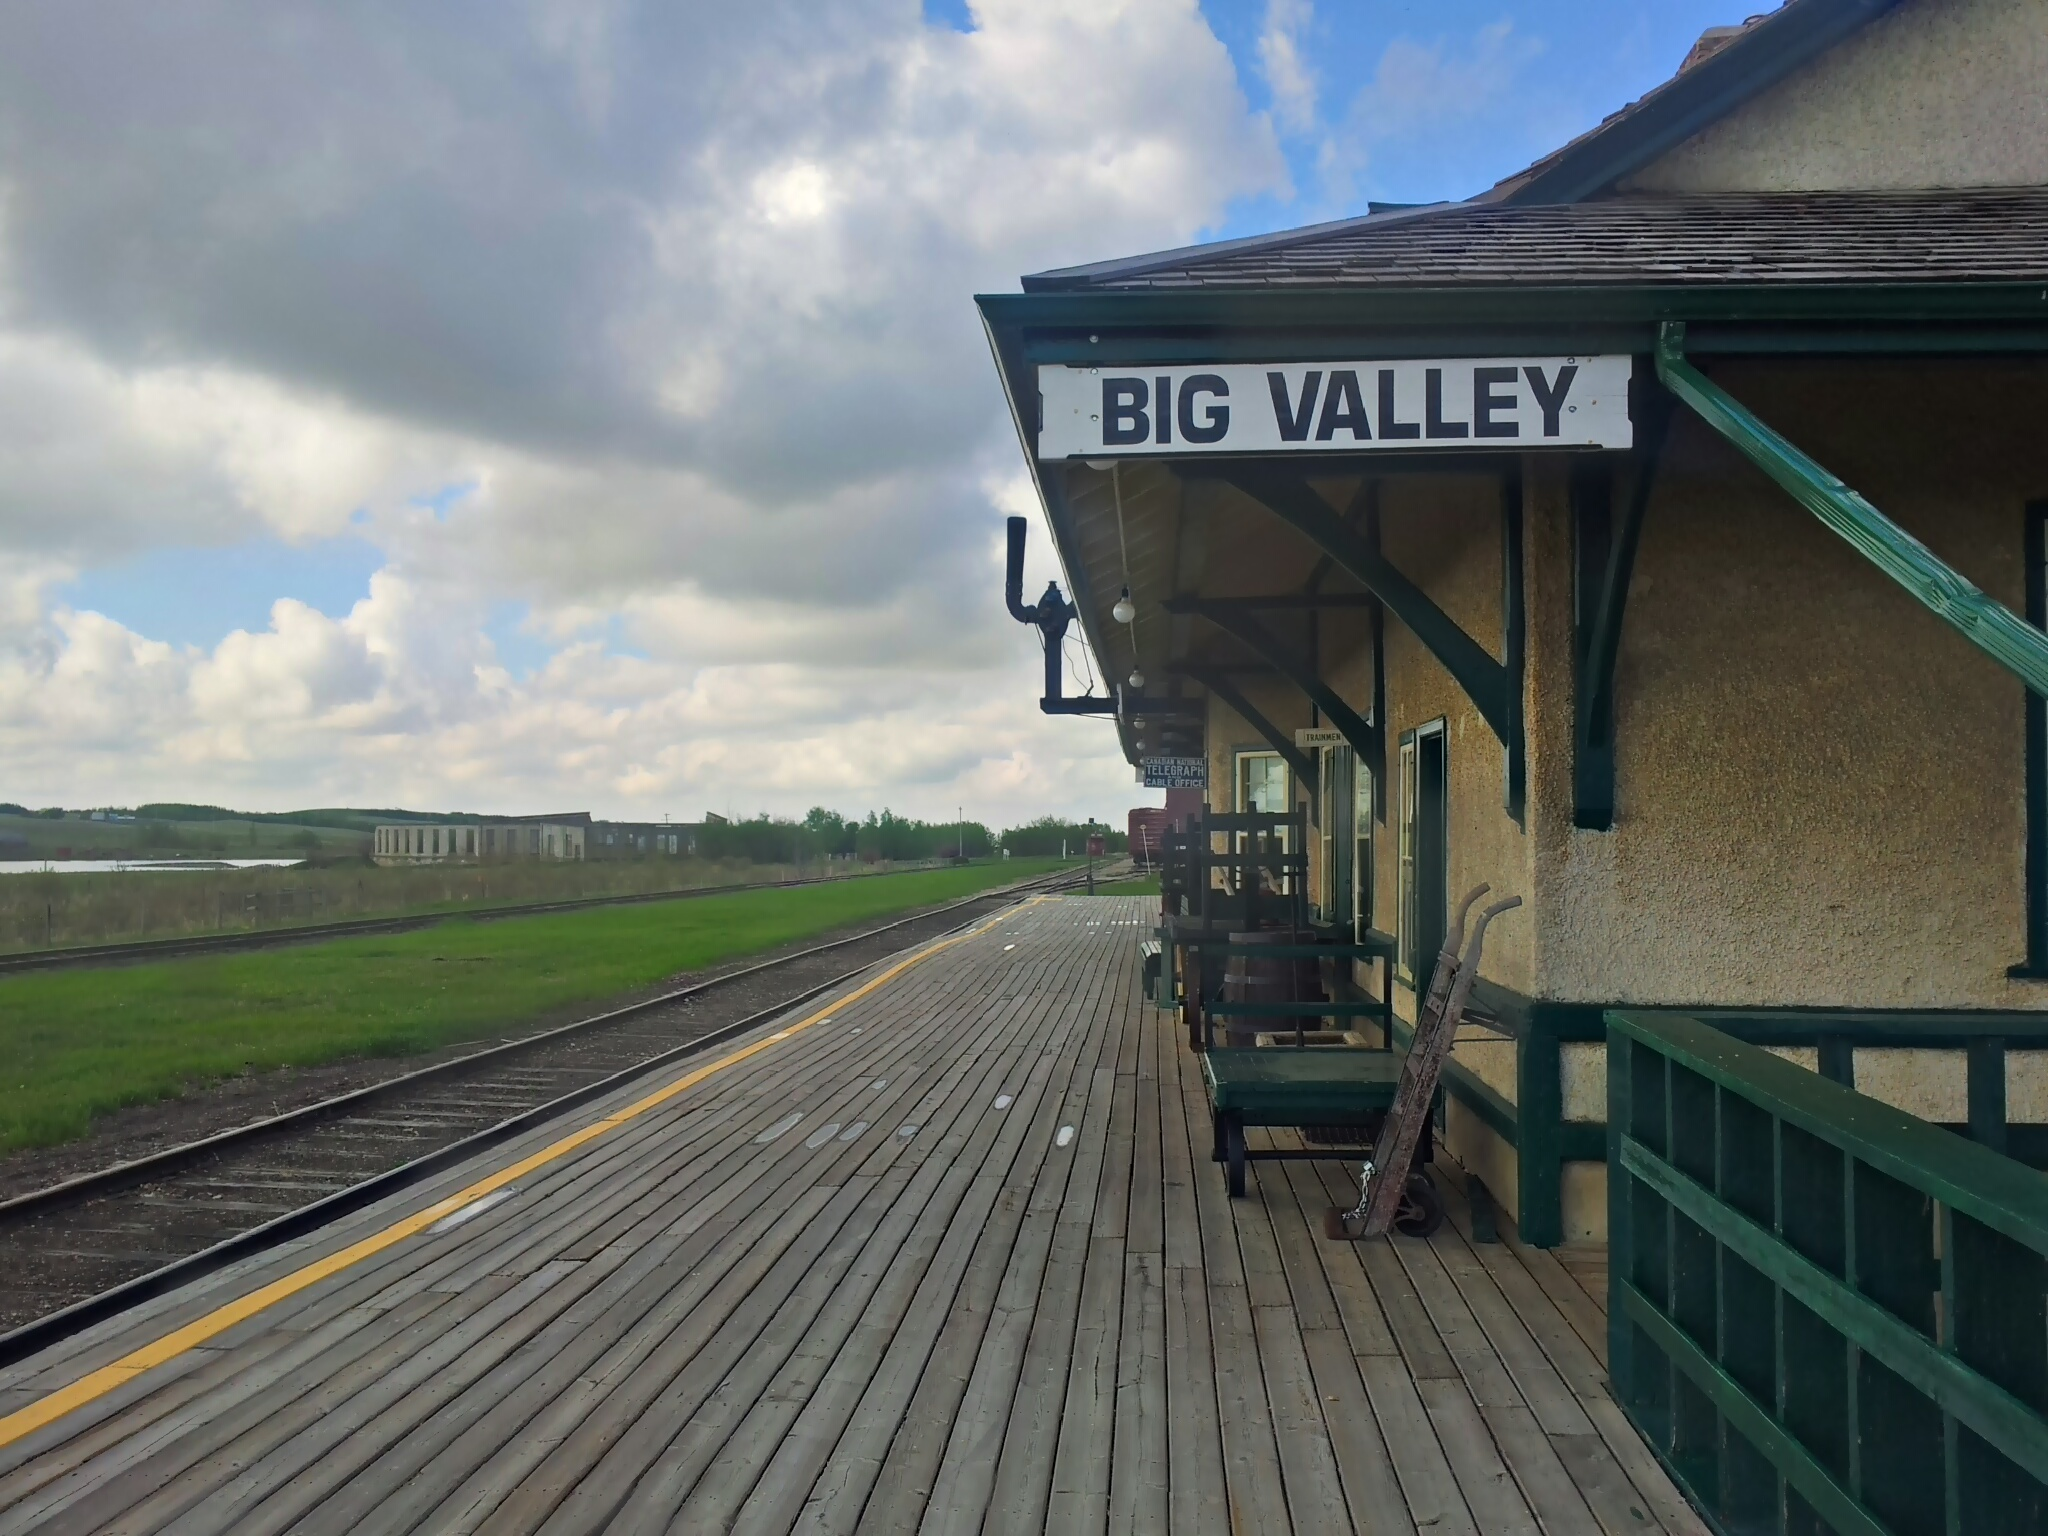 Big Valley train station